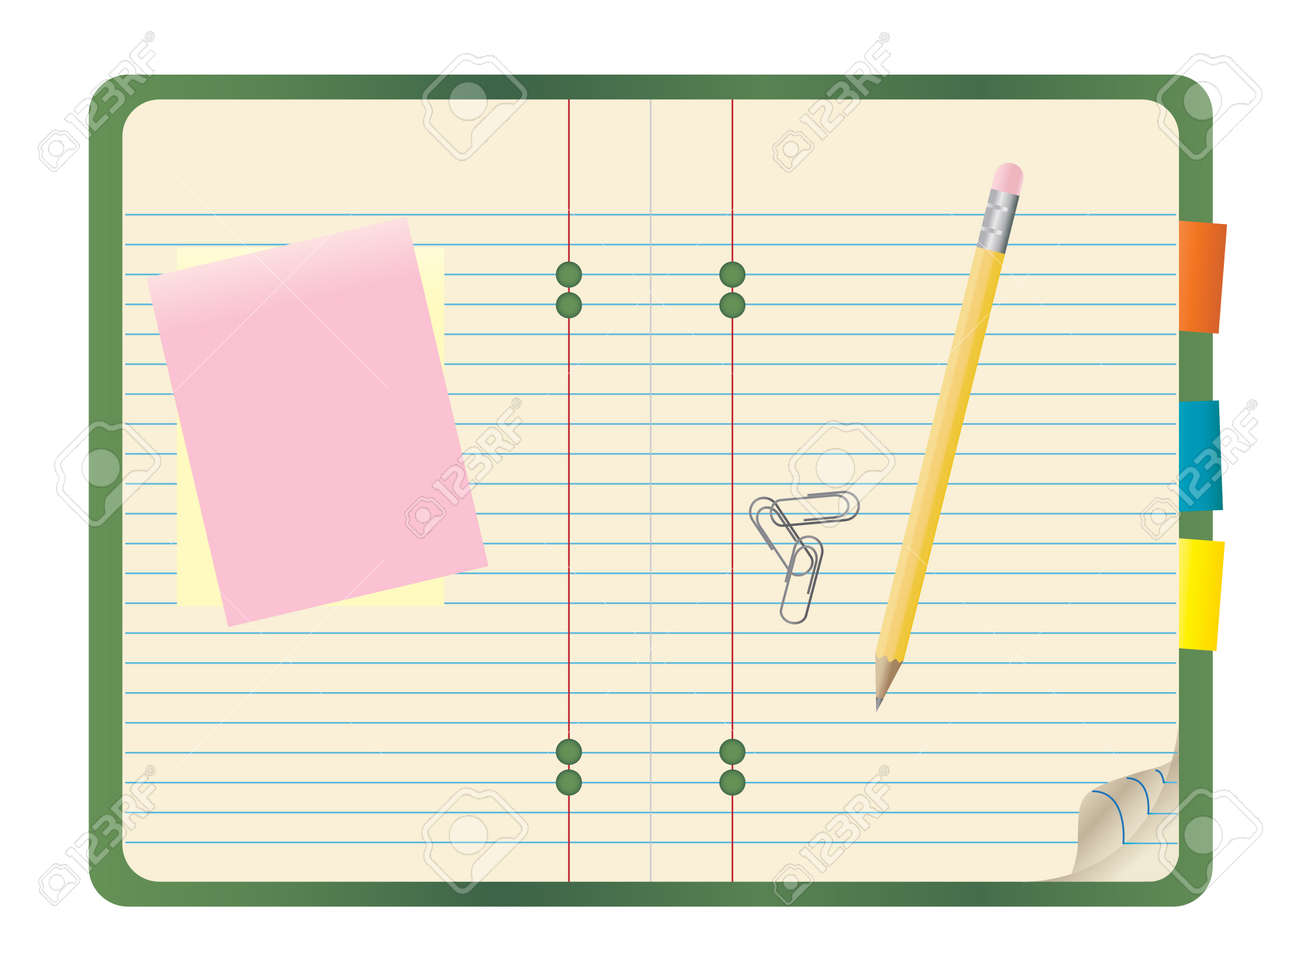 illustration of a notebook with a pencil, notepads and paper clips on top. Stock Vector - 7615726